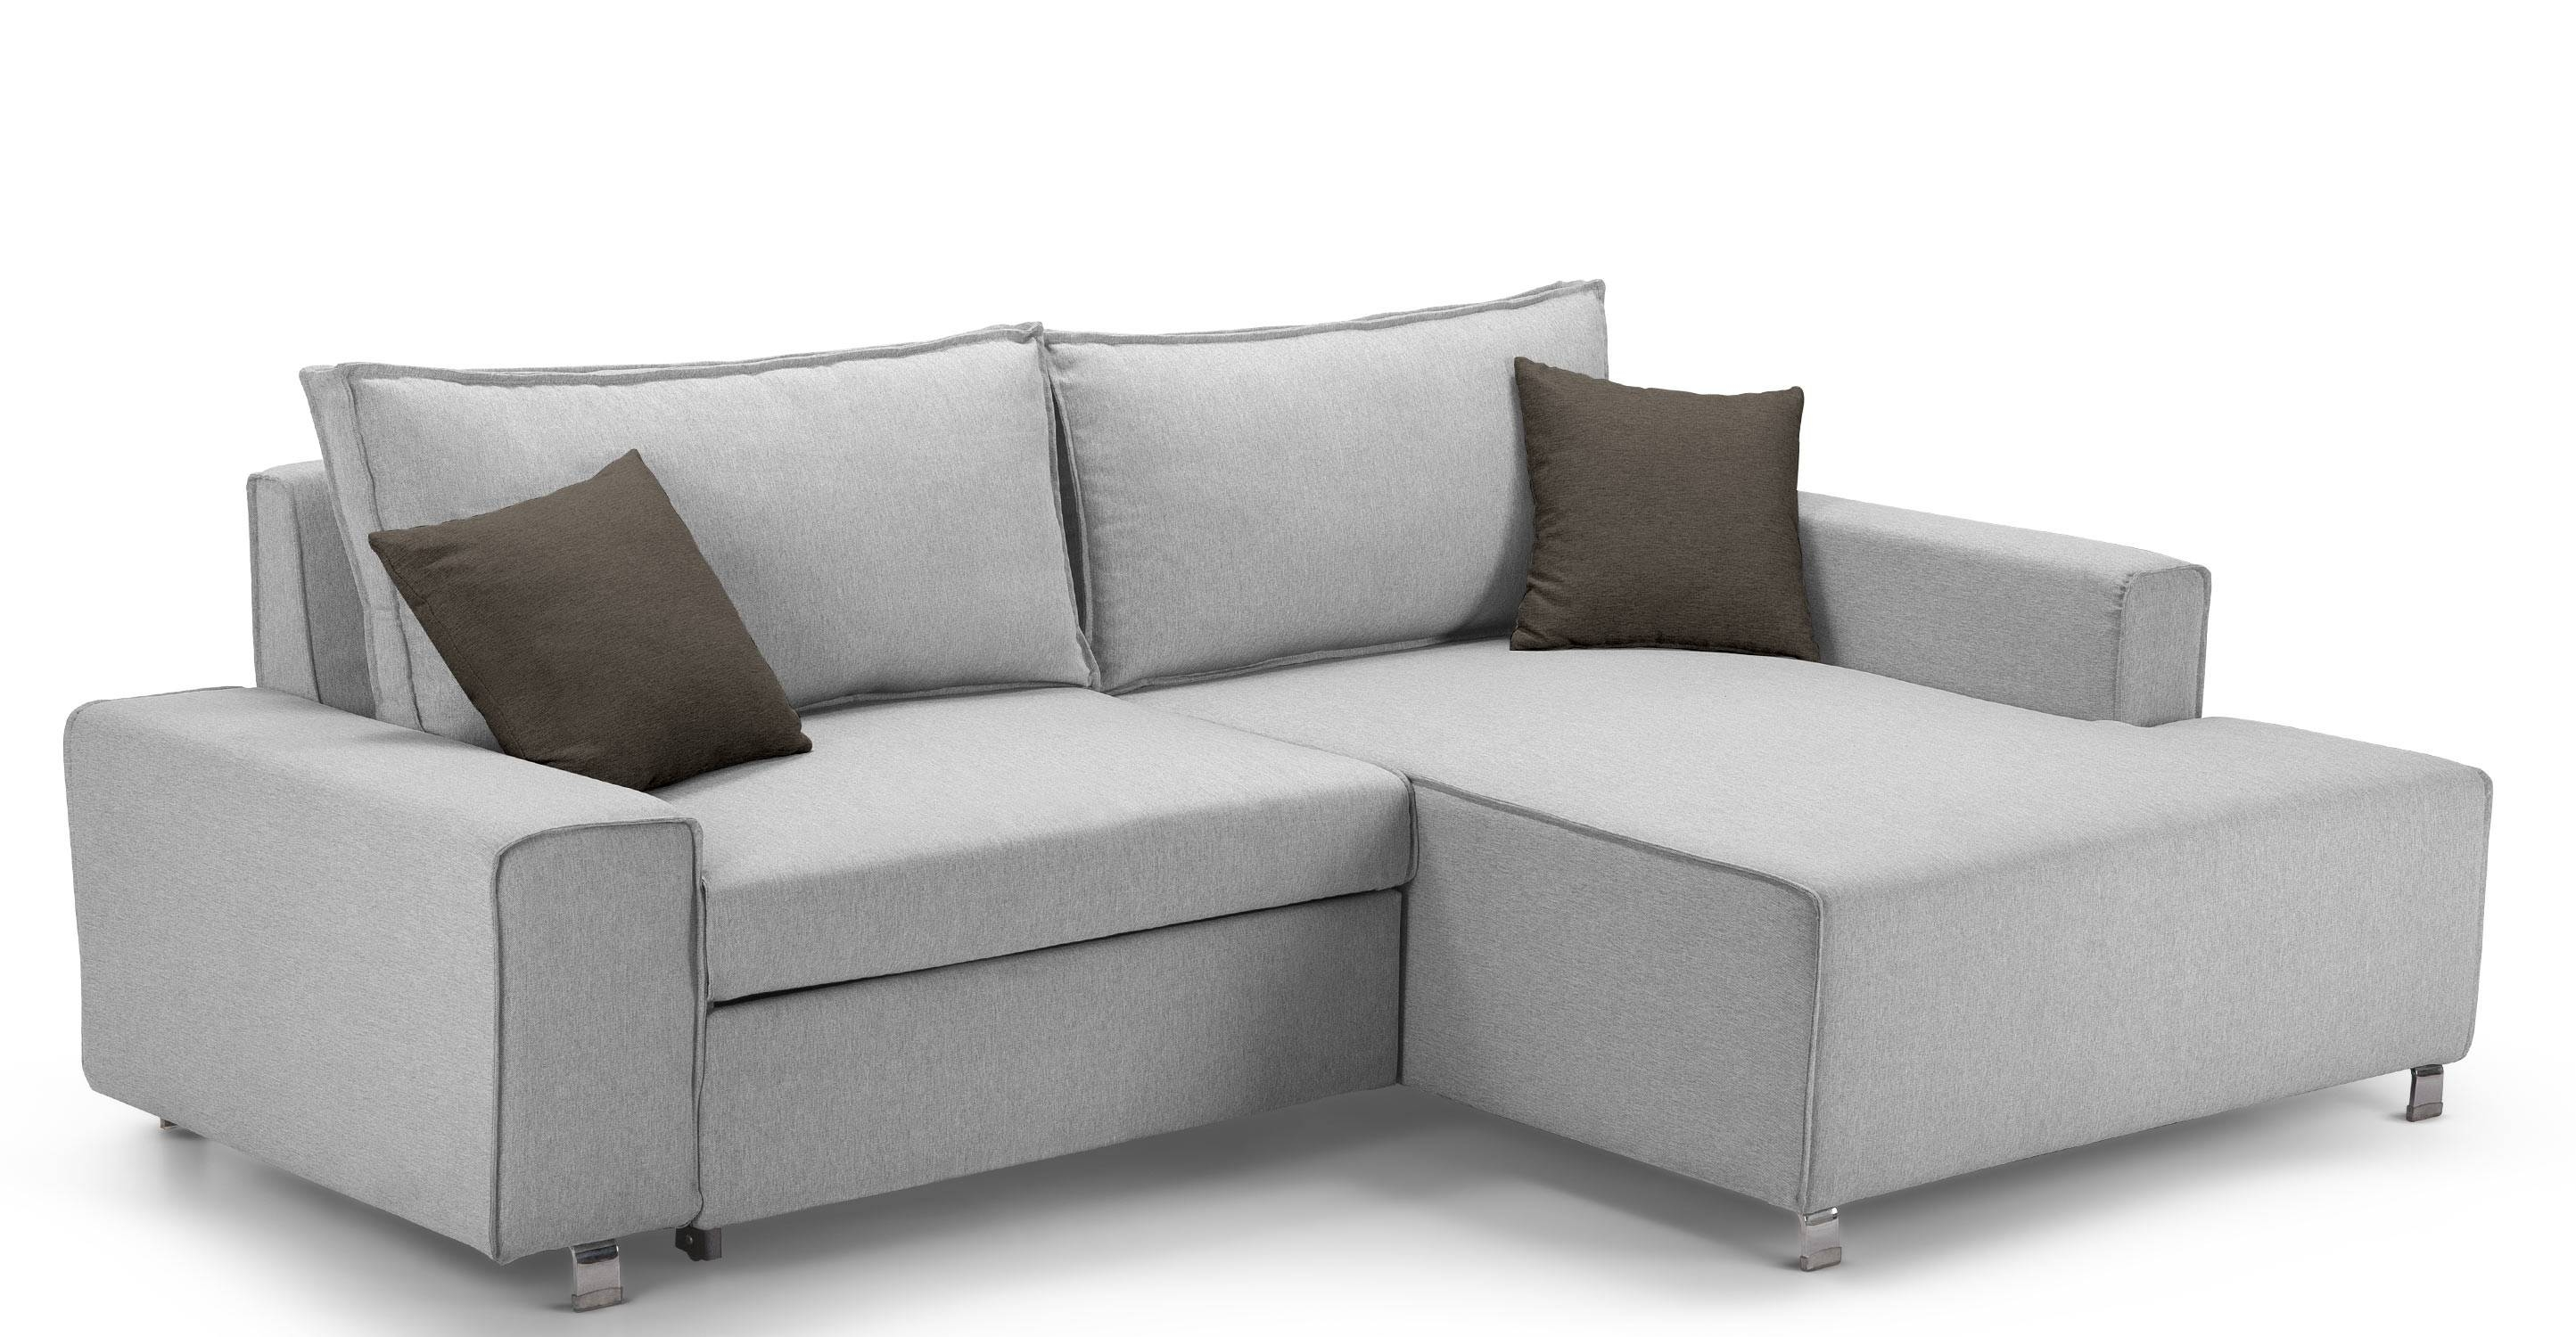 Gauteng For Sale - S3Net - Sectional Sofas Sale : S3Net within Corner Sofa Bed Sale (Image 11 of 30)